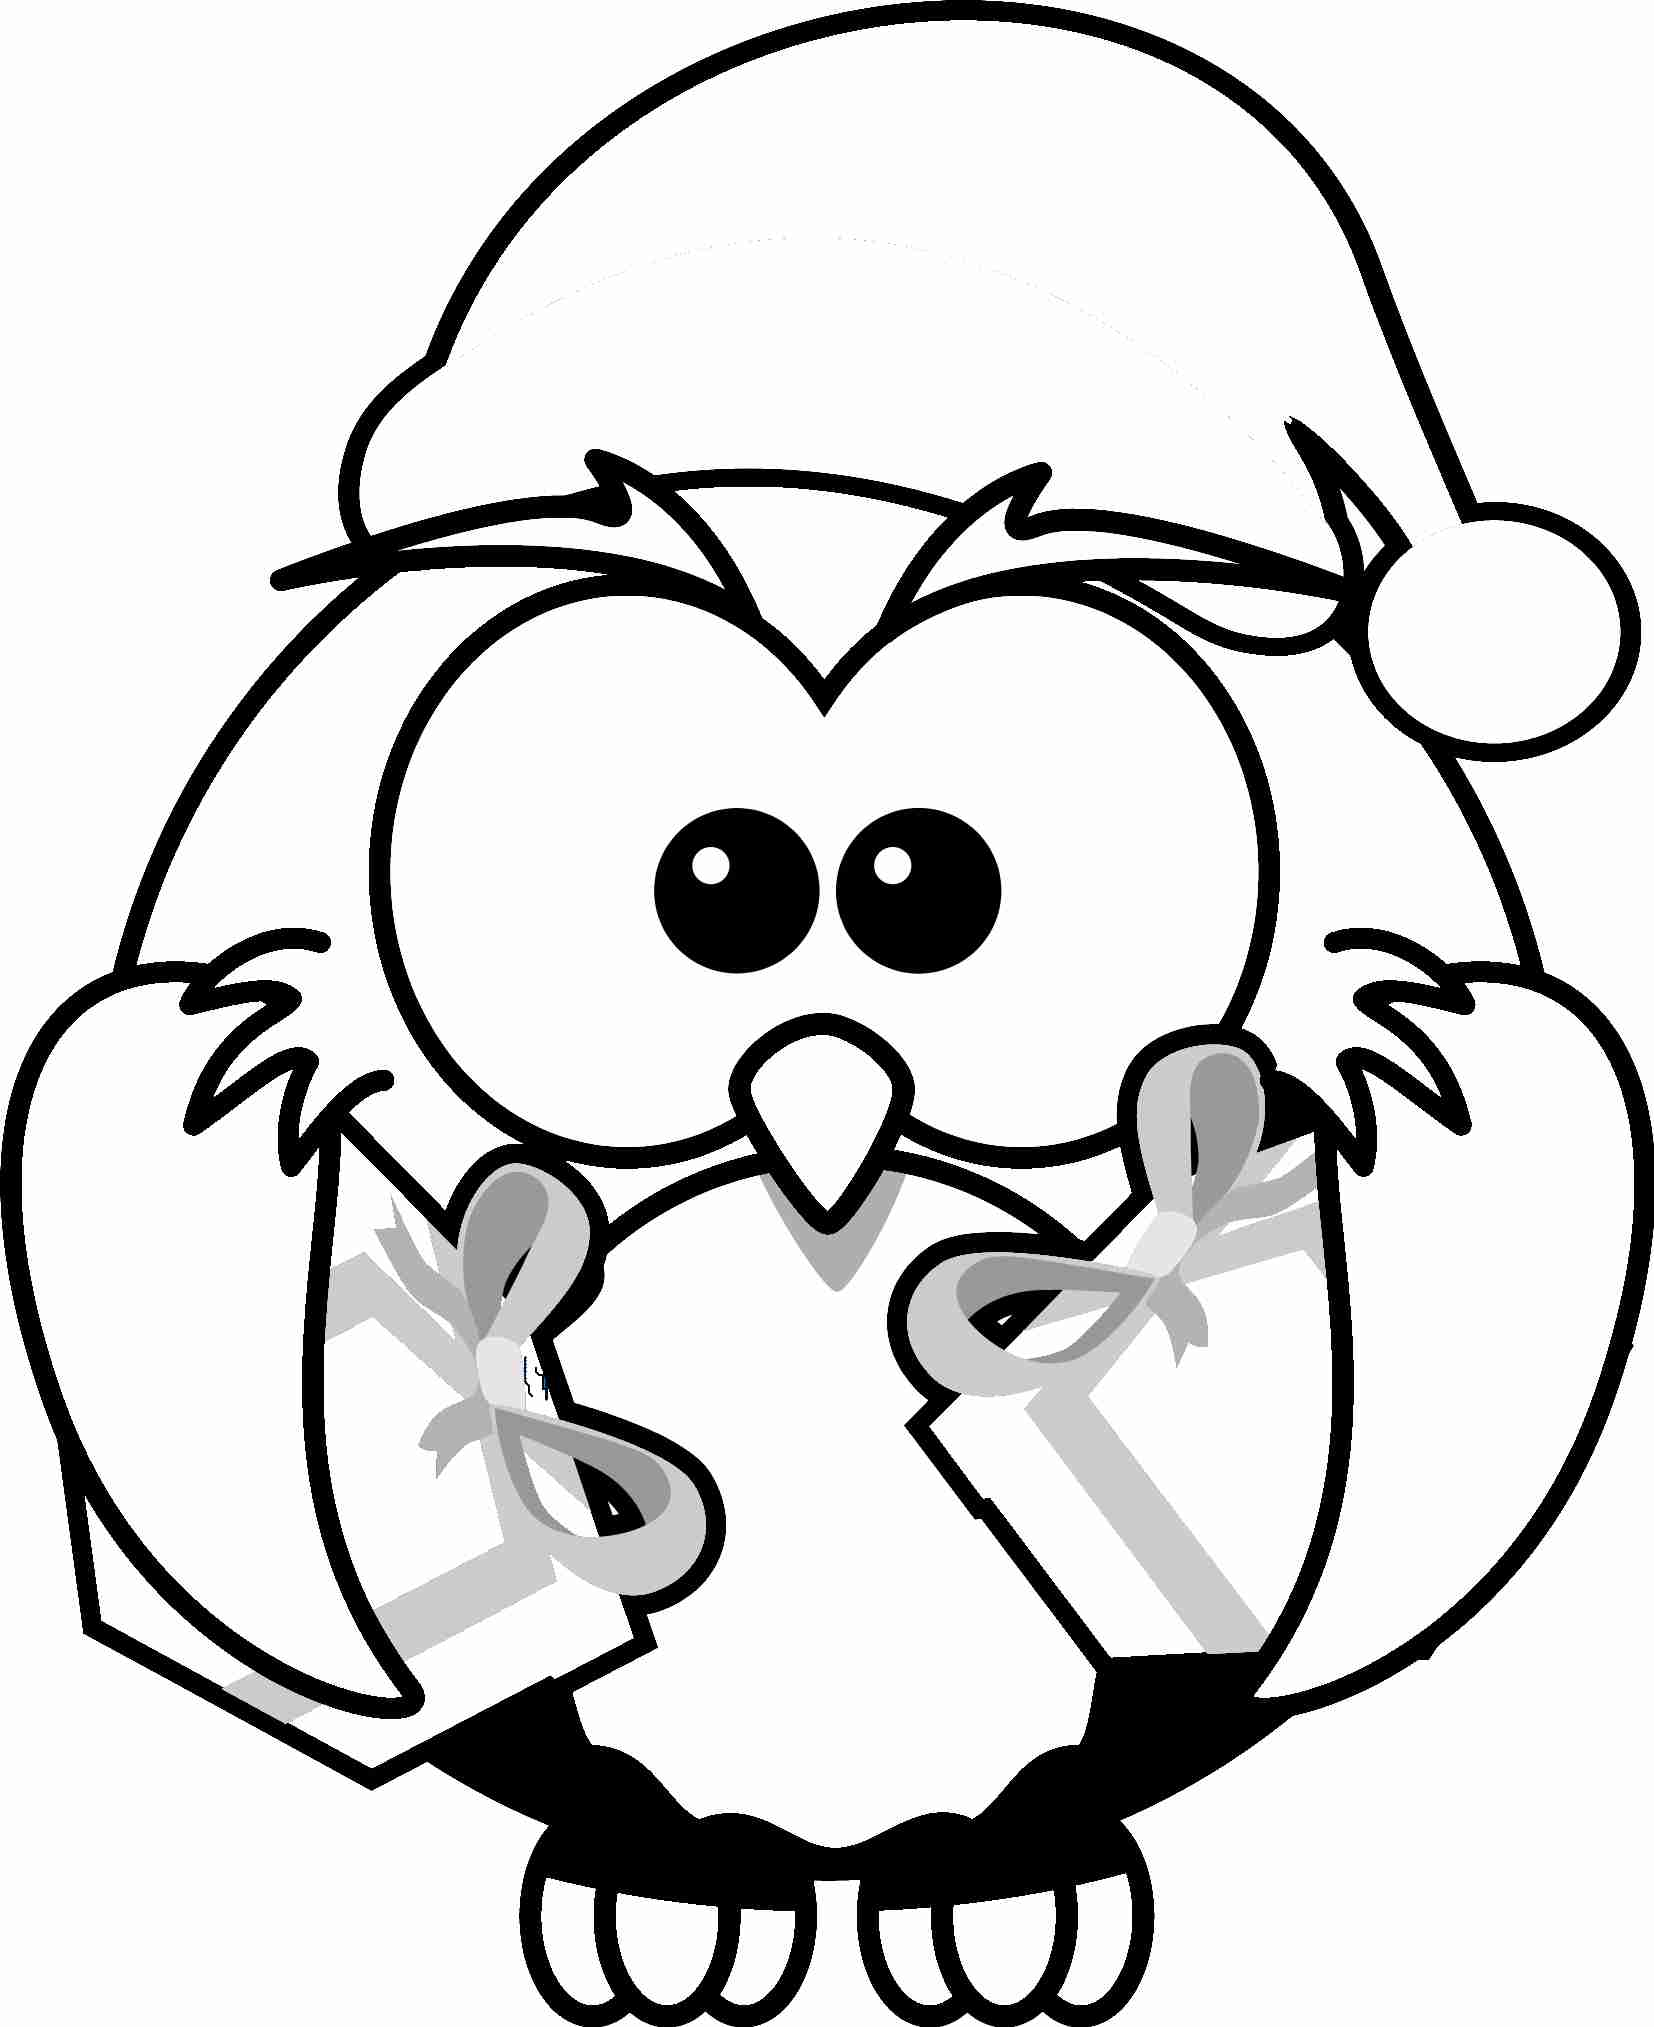 Christmas Coloring Free Printables With Father Pictures To Colour Download Clip Art